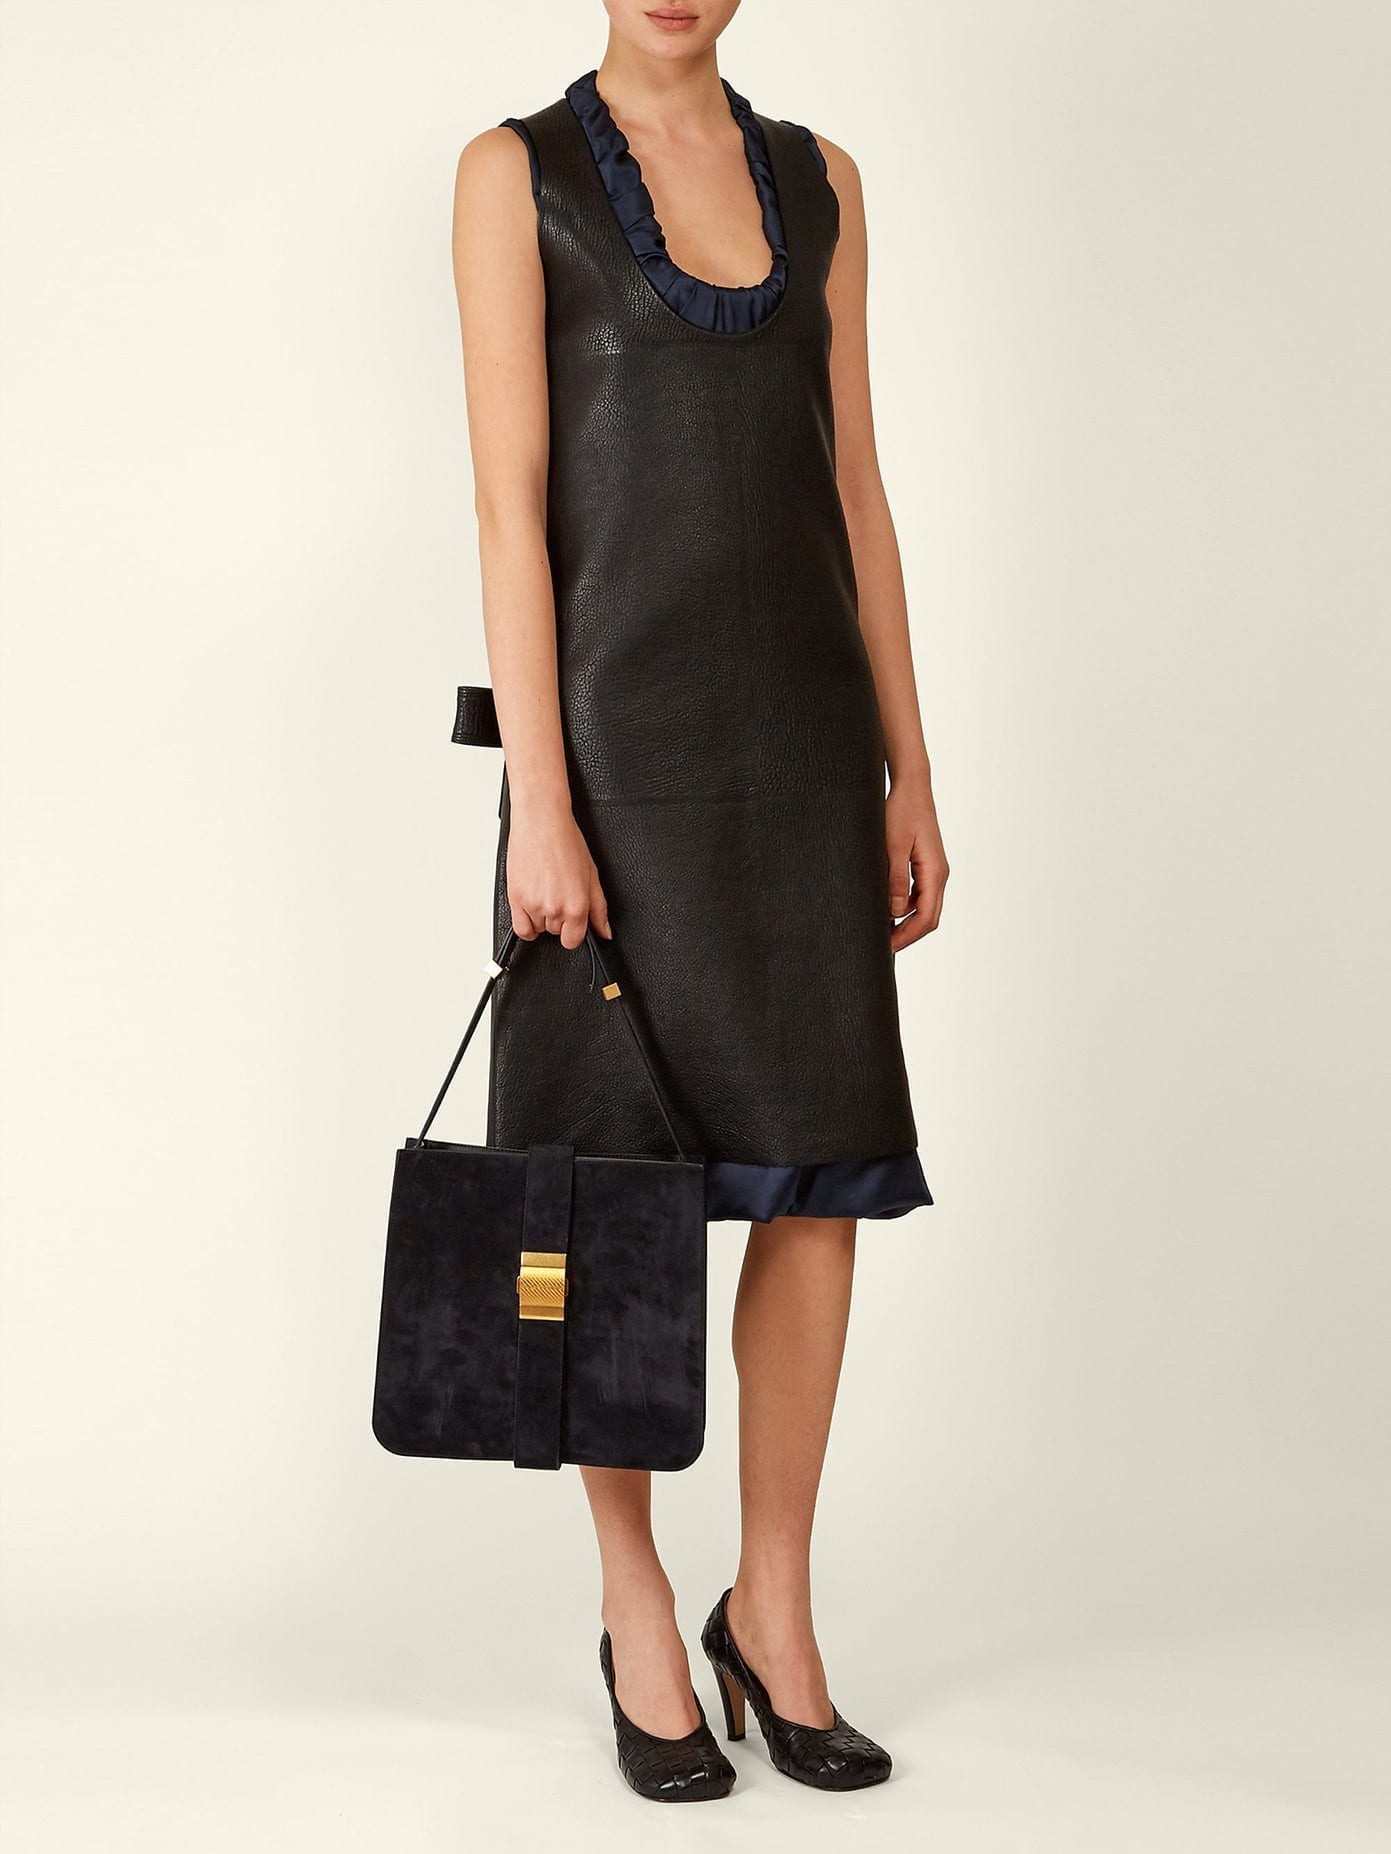 BOTTEGA VENETA Patch-pocket Leather Midi Dress